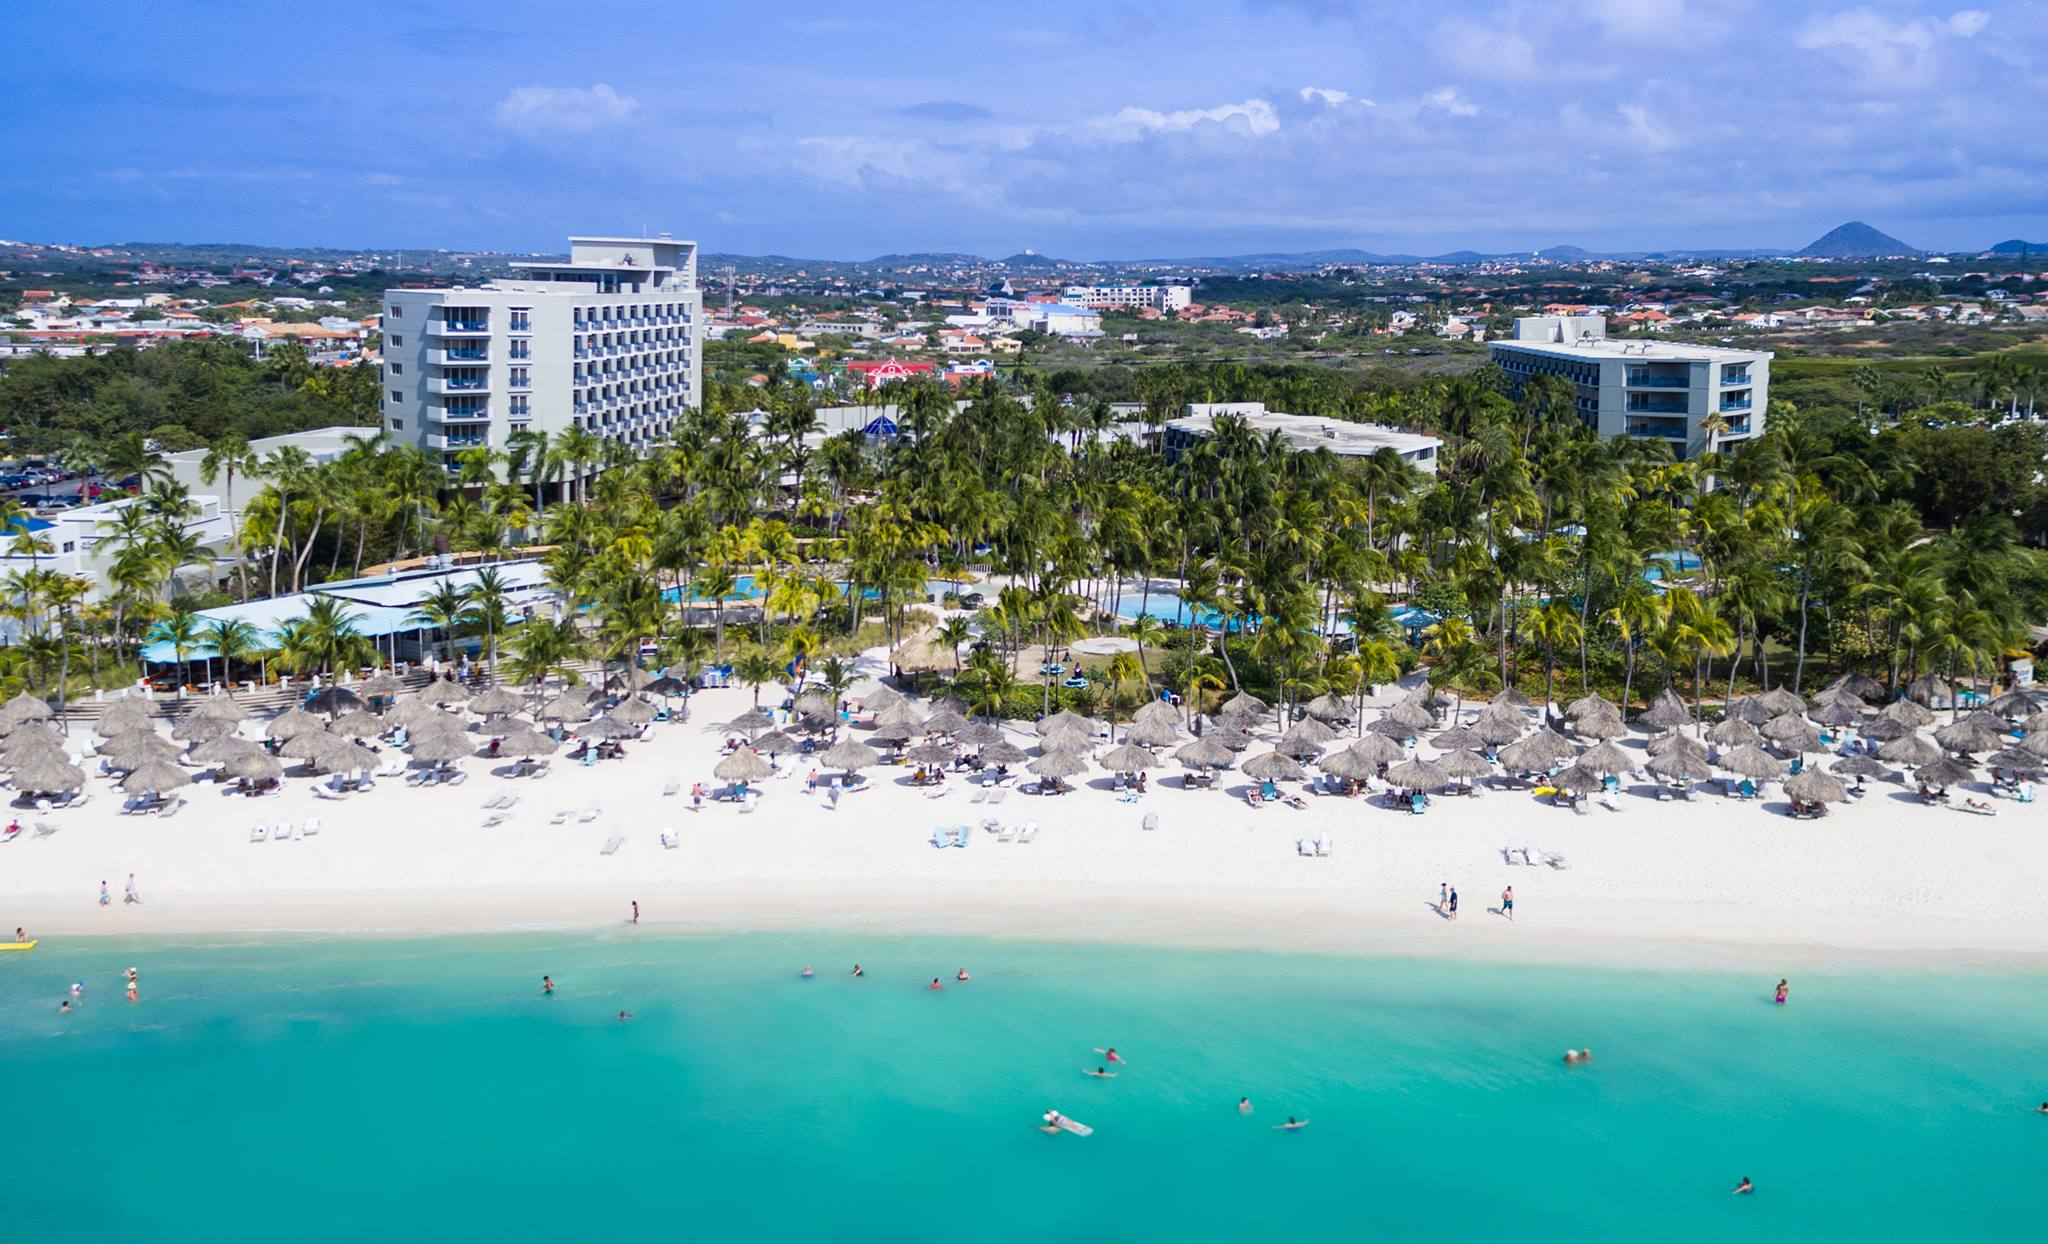 This Hilton Aruba is one of the casinos resorts we think would make a great wedding destination.